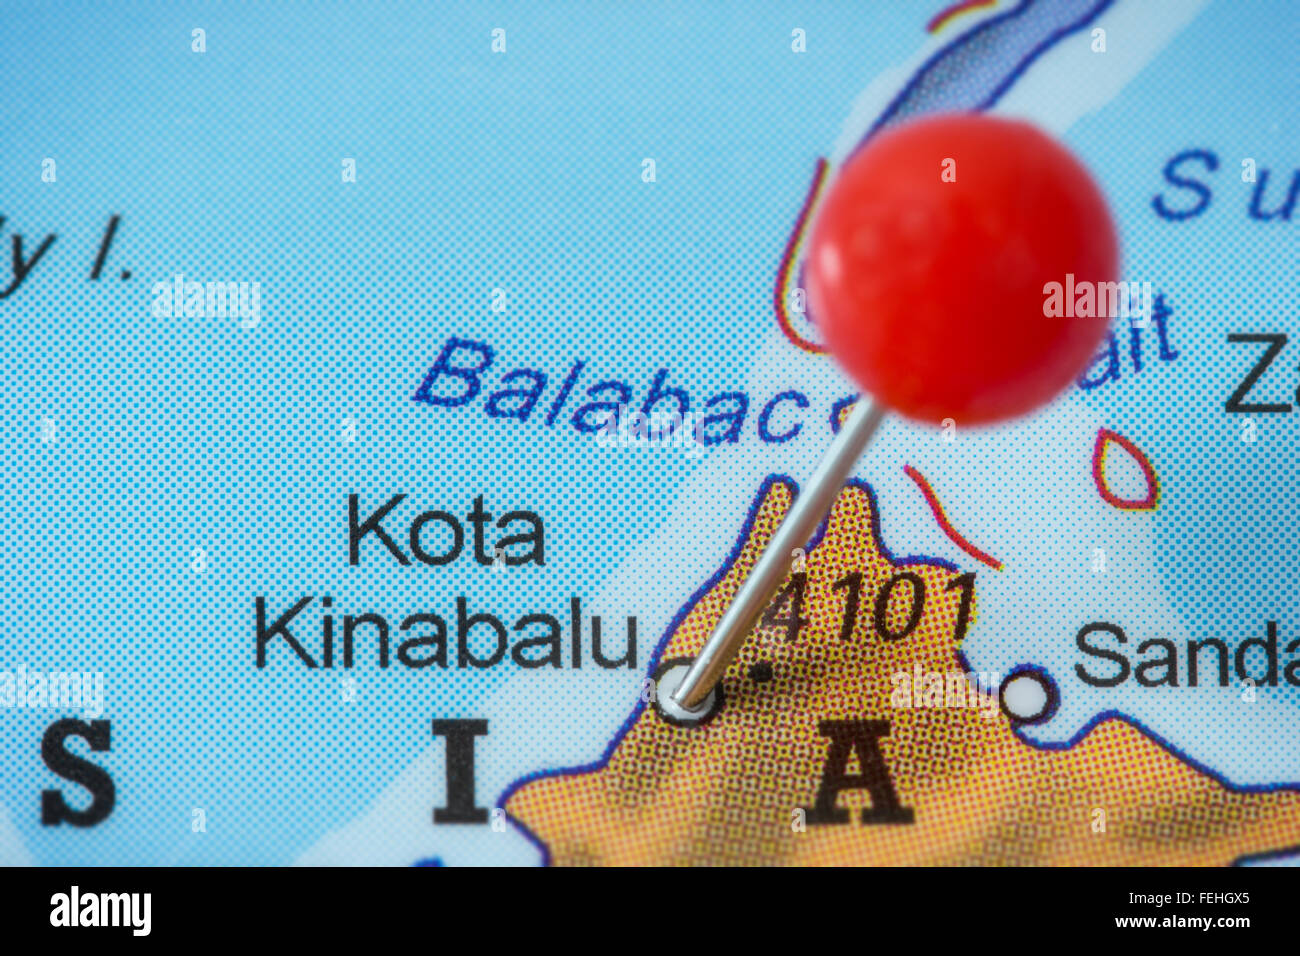 Close-up of a red pushpin in a map of Kota Kinabalu, Malaysia. - Stock Image